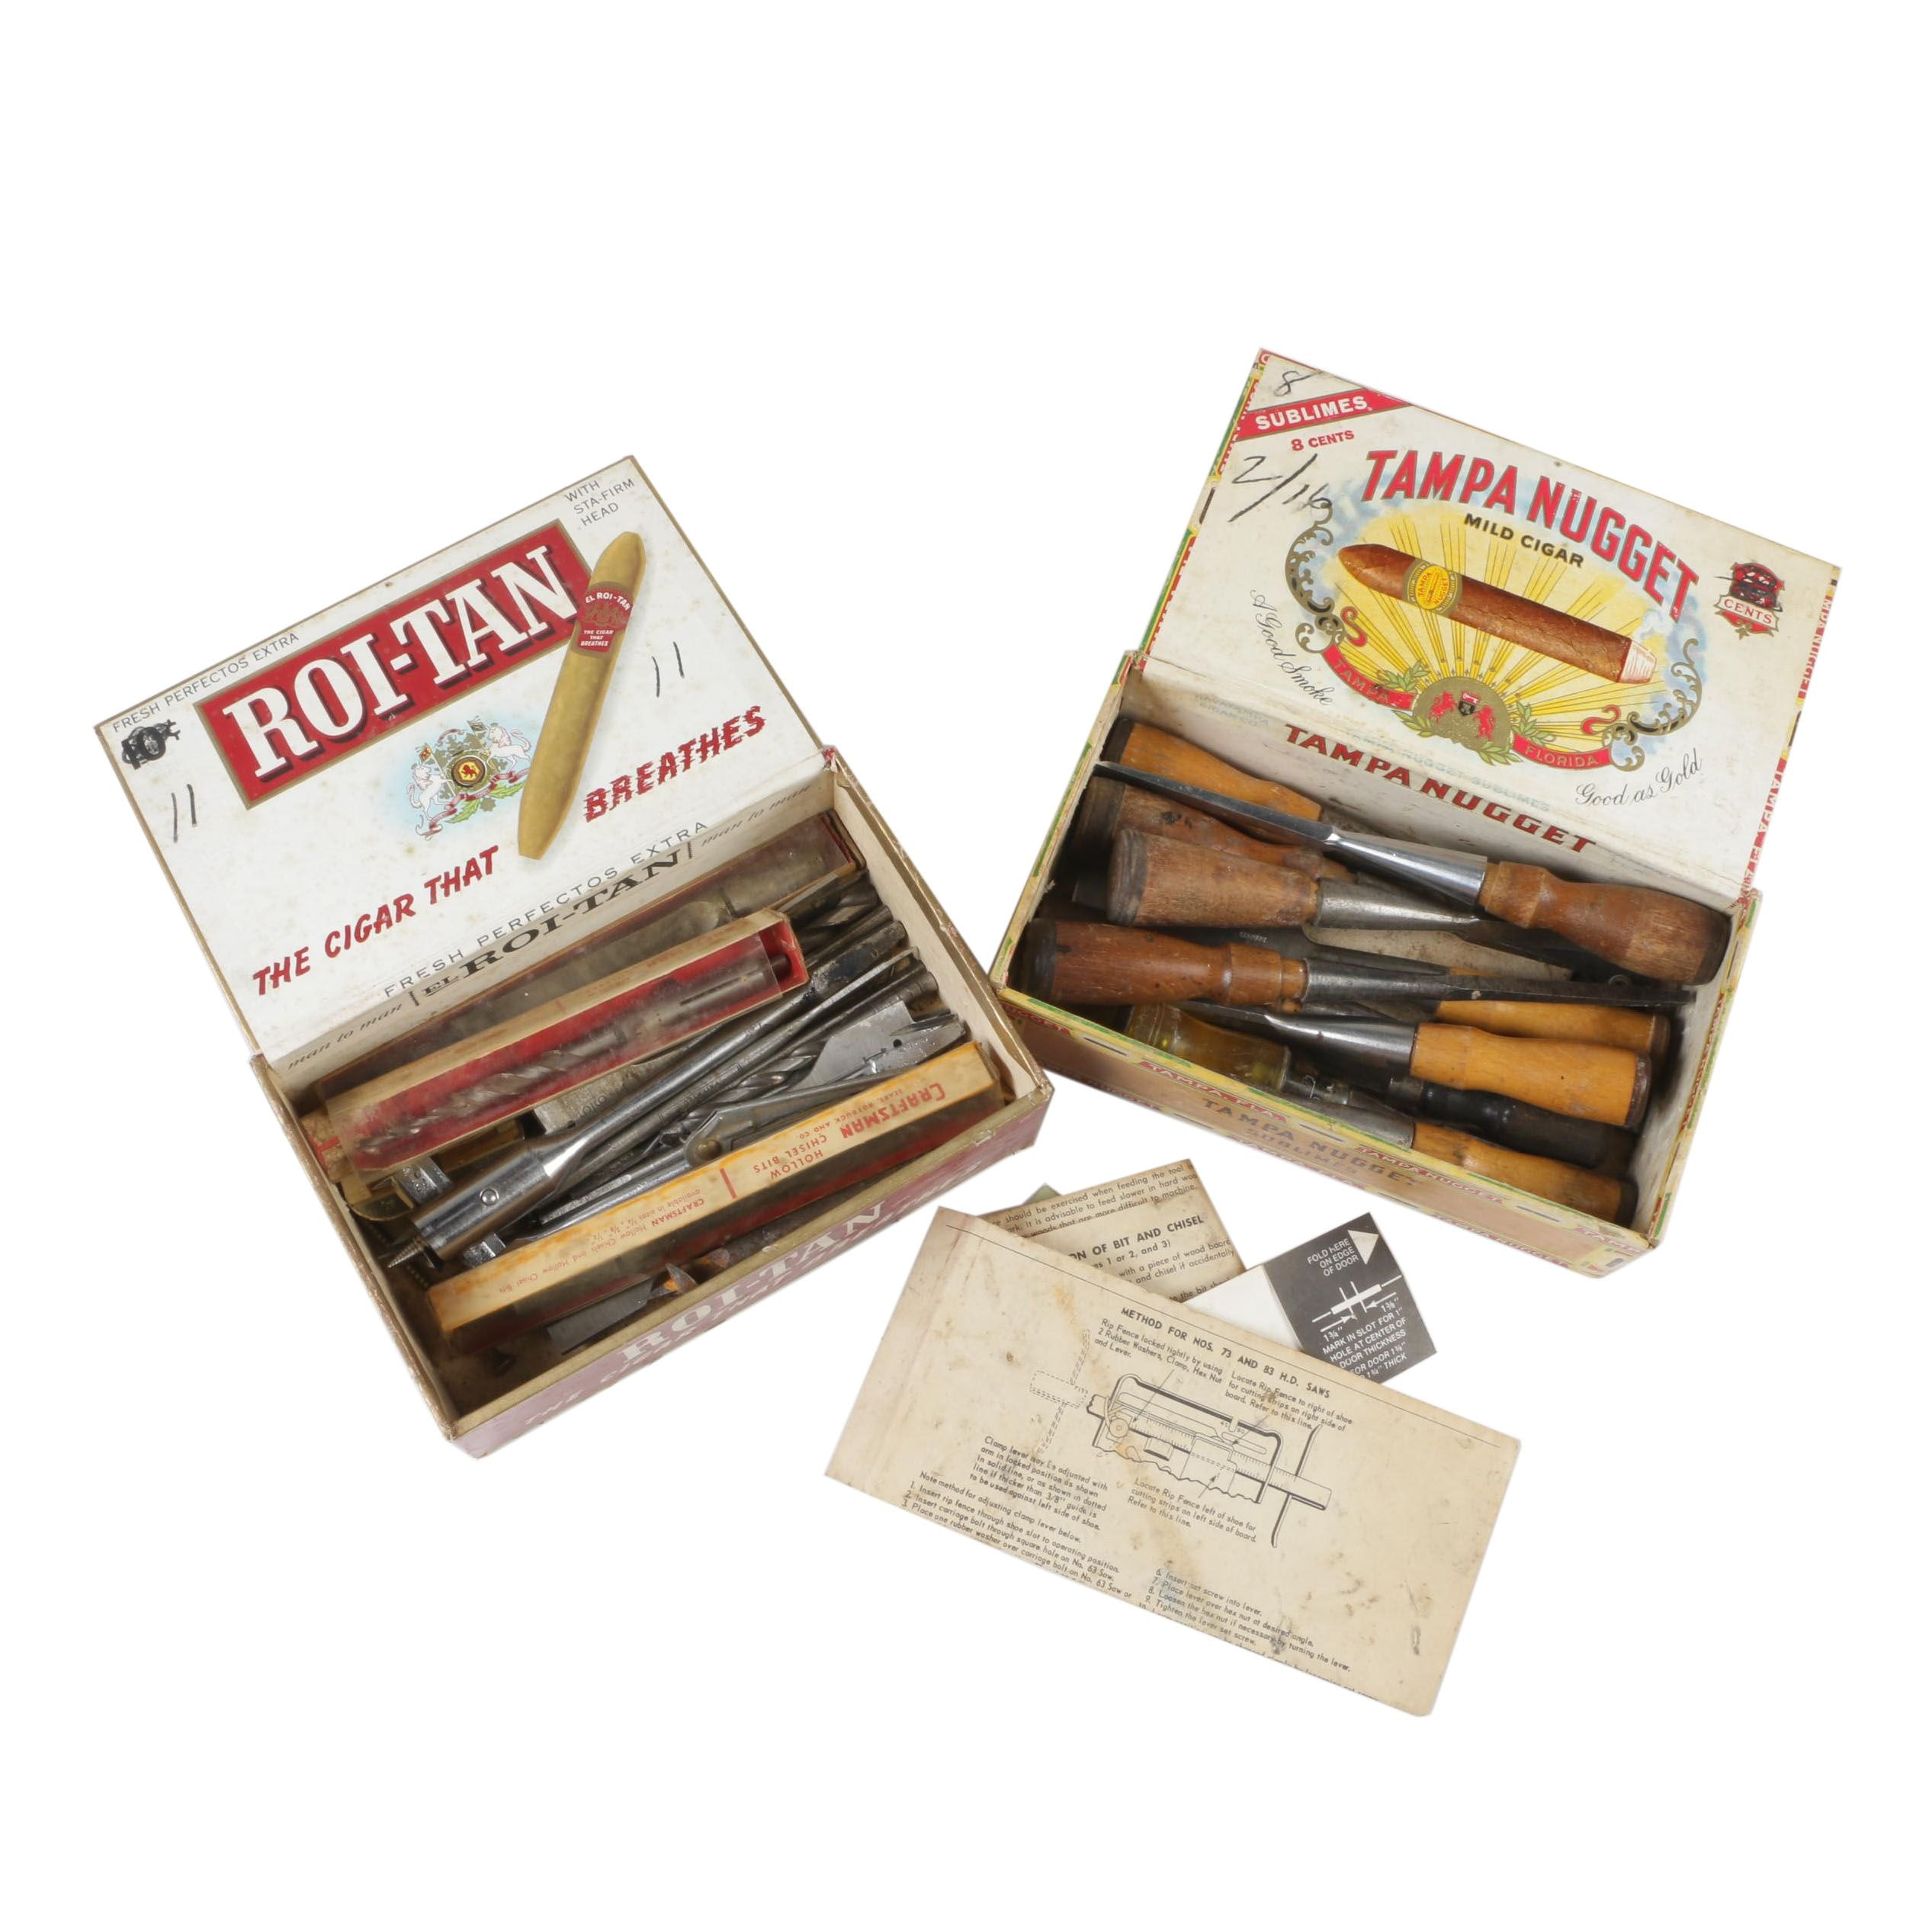 Handheld Woodworking Chisels with Mortising Drill and Chisel Bits, Vintage